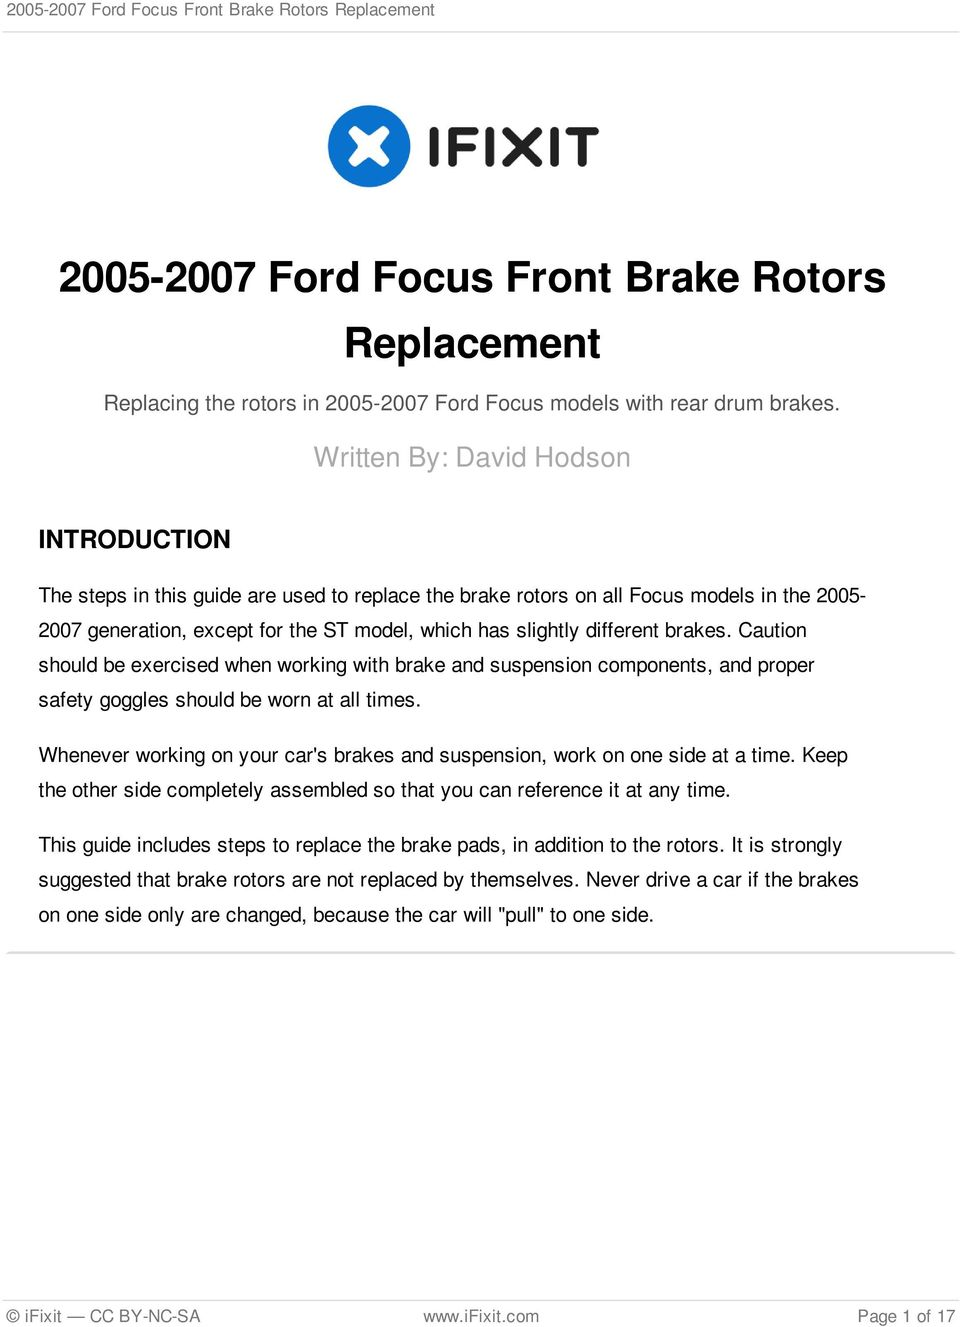 different brakes. Caution should be exercised when working with brake and suspension components, and proper safety goggles should be worn at all times.